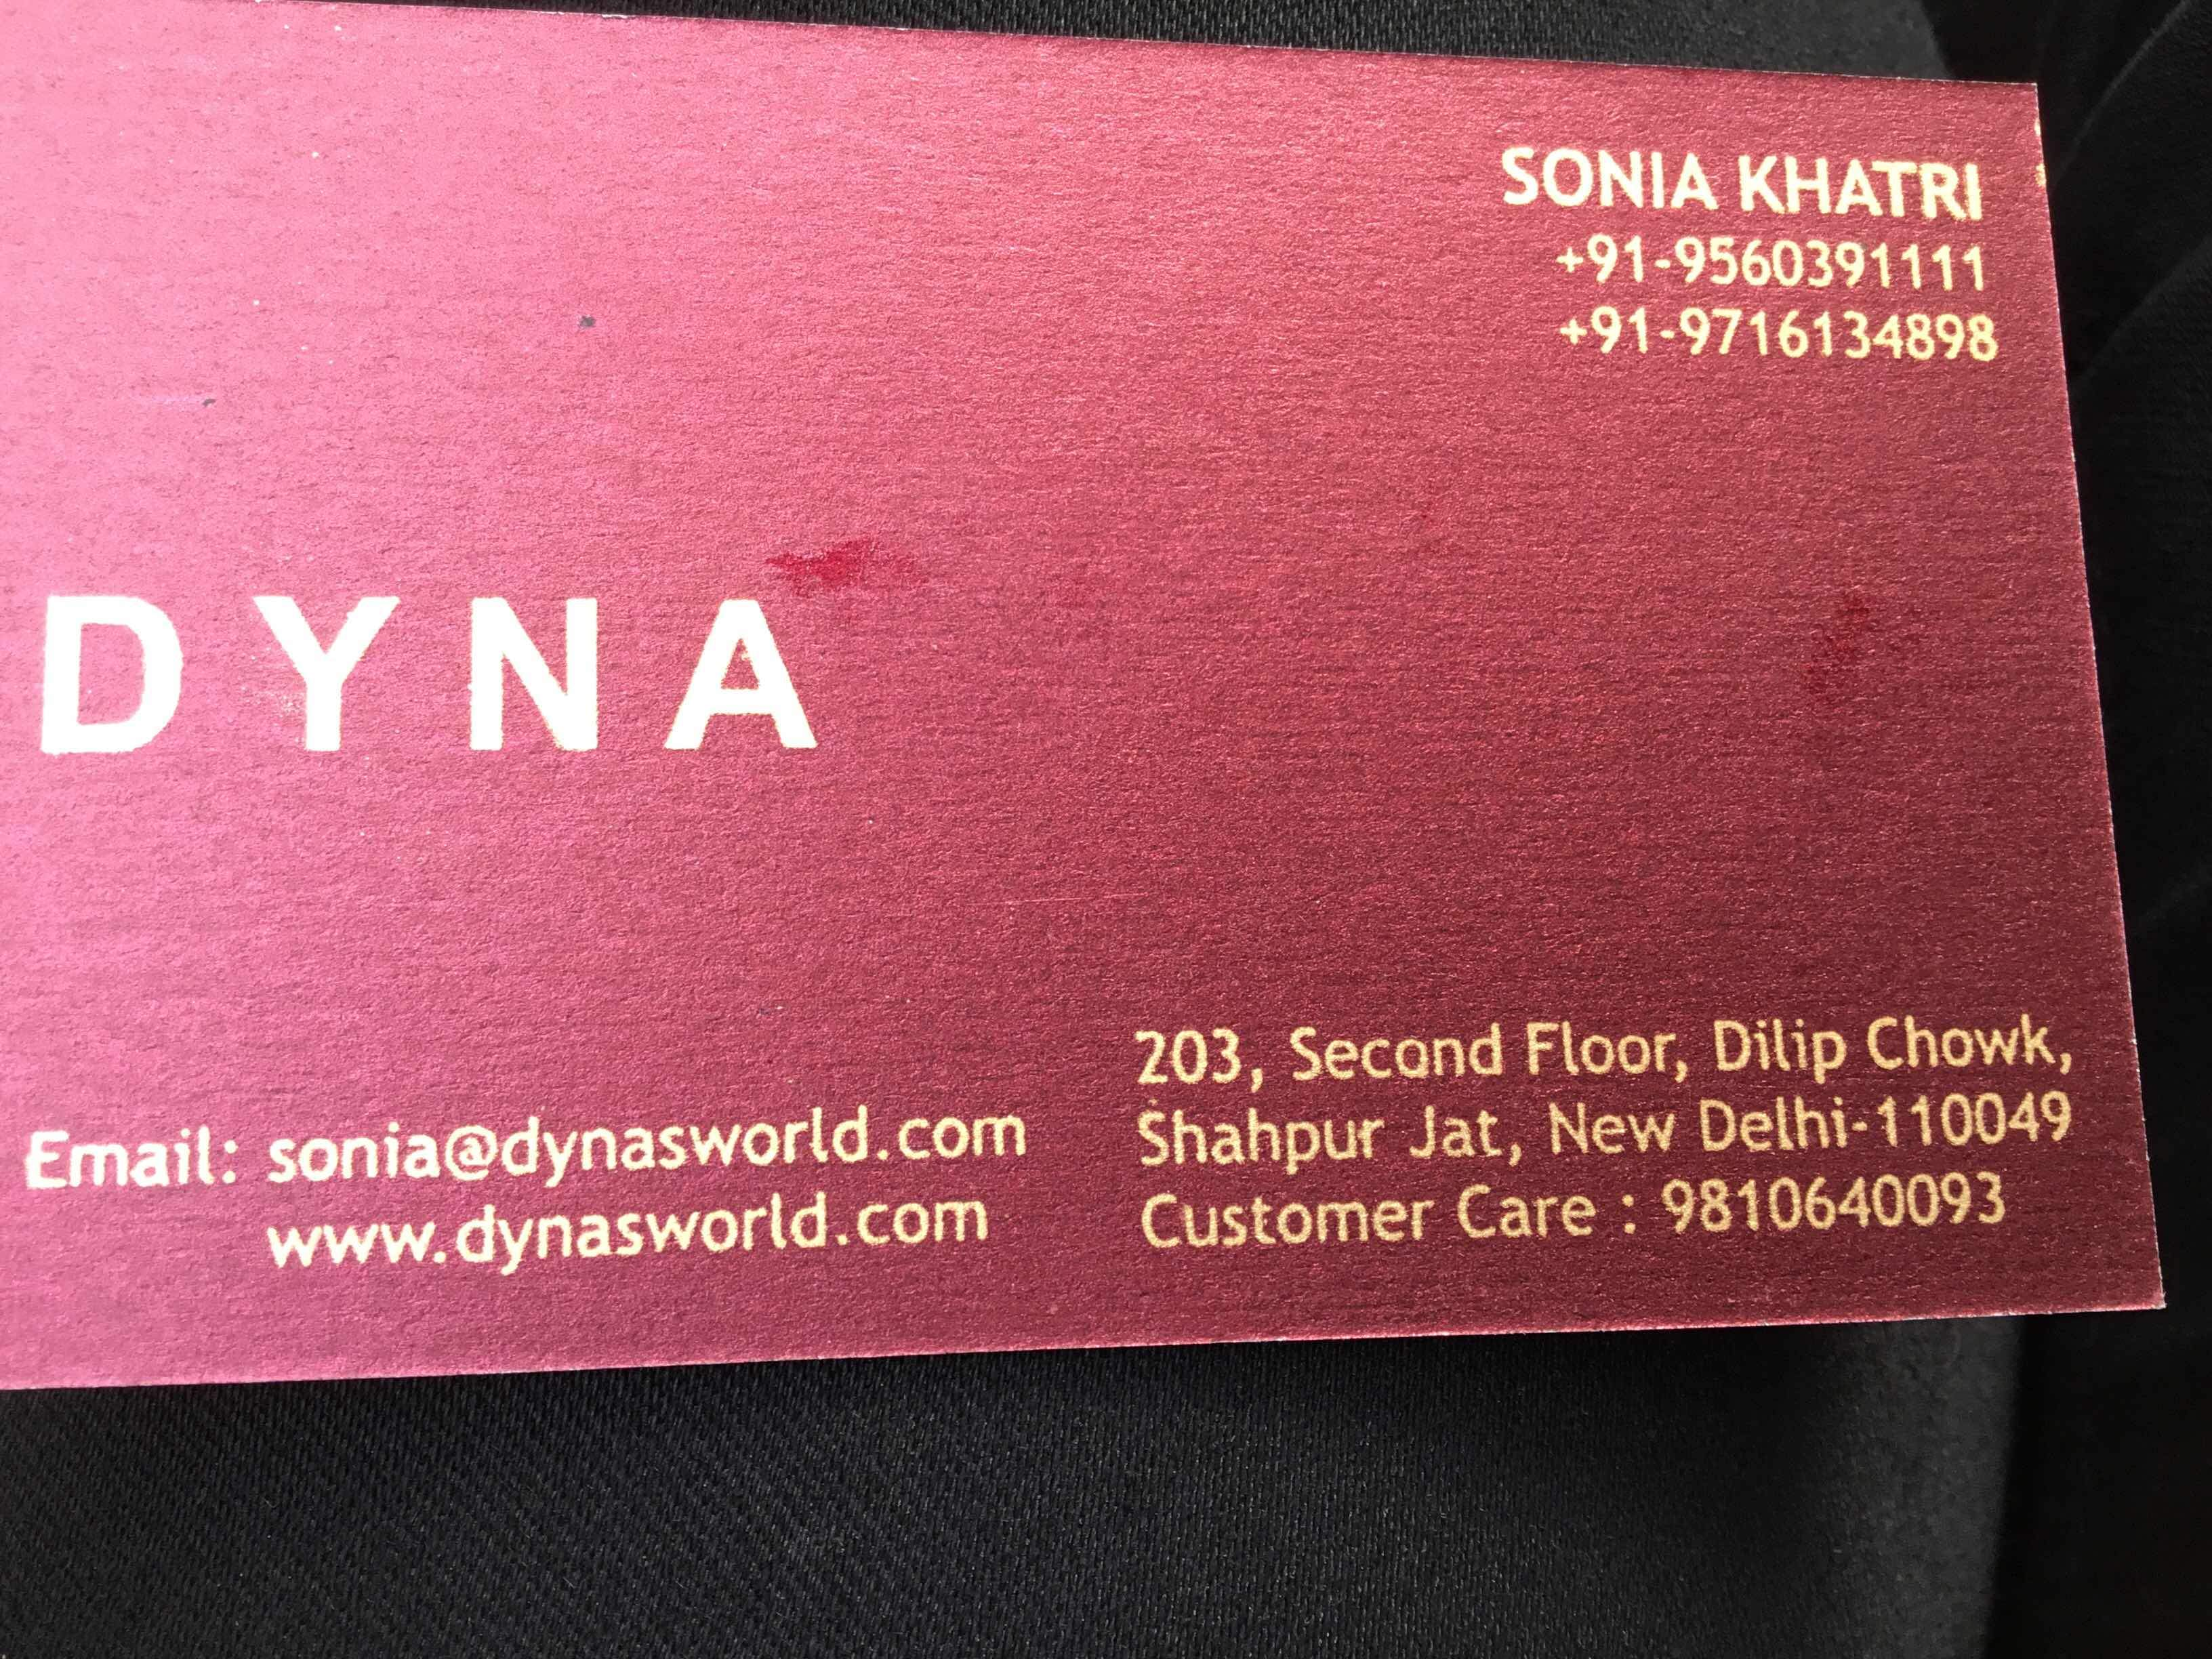 dyna is a fashion brand in shahpur jat